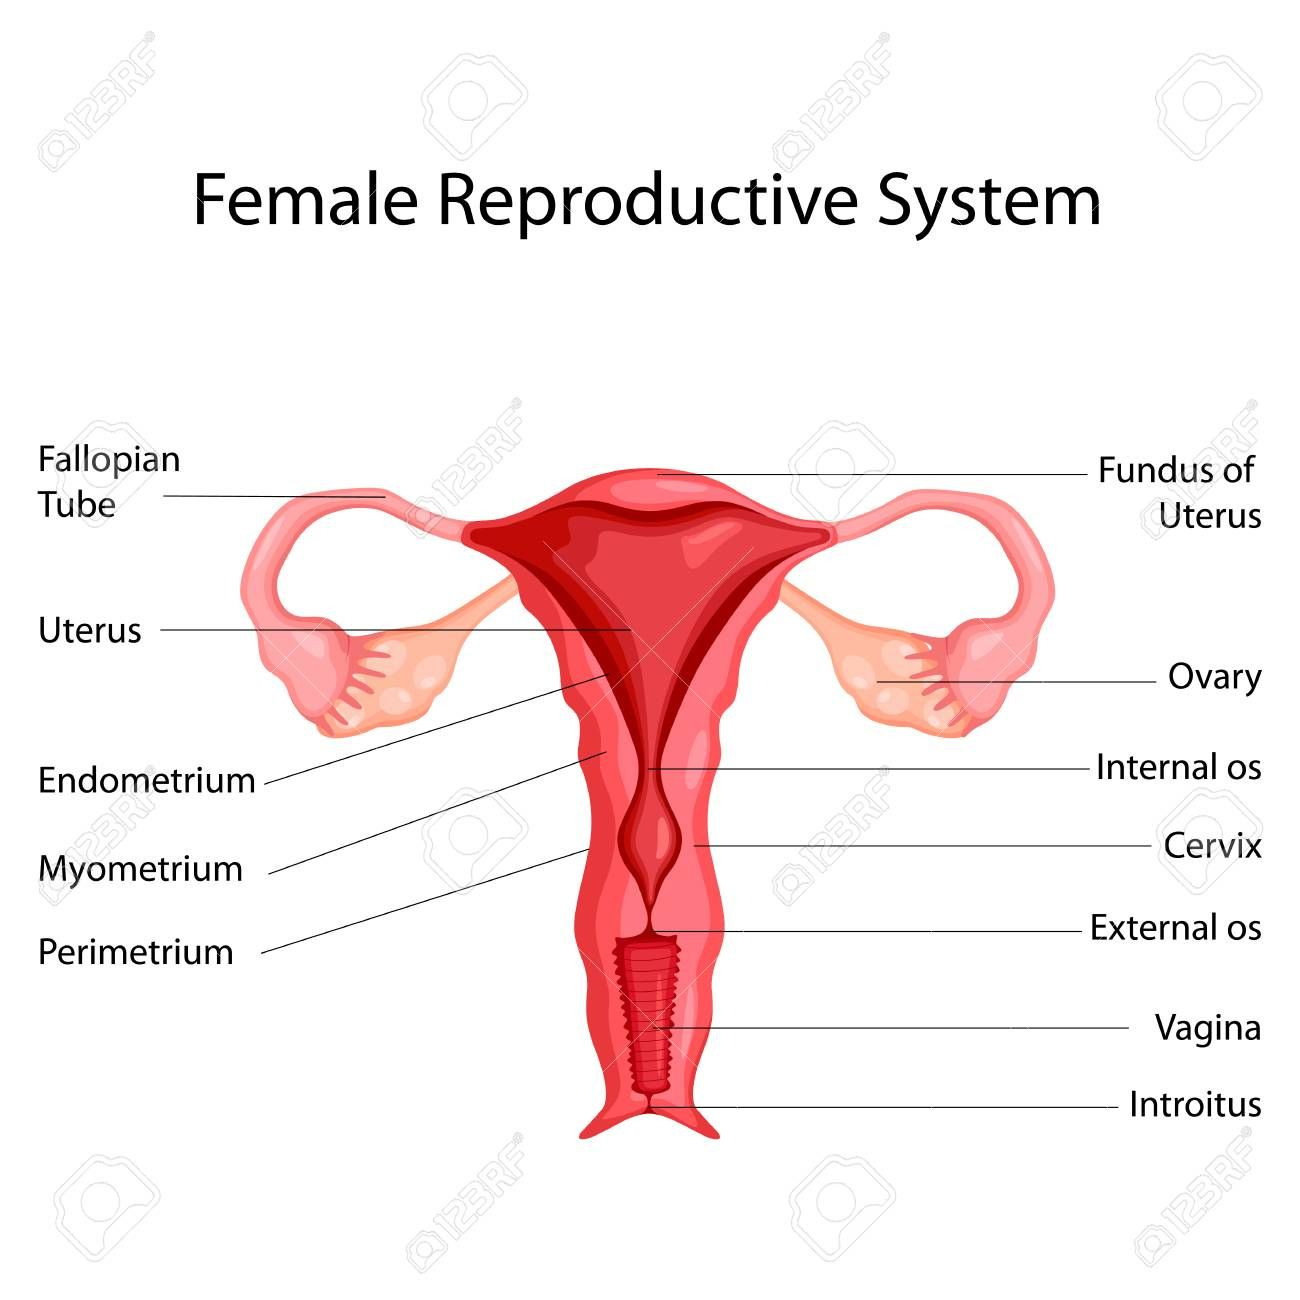 small resolution of image of female reproductive system diagram image of female reproductive system diagram education chart of